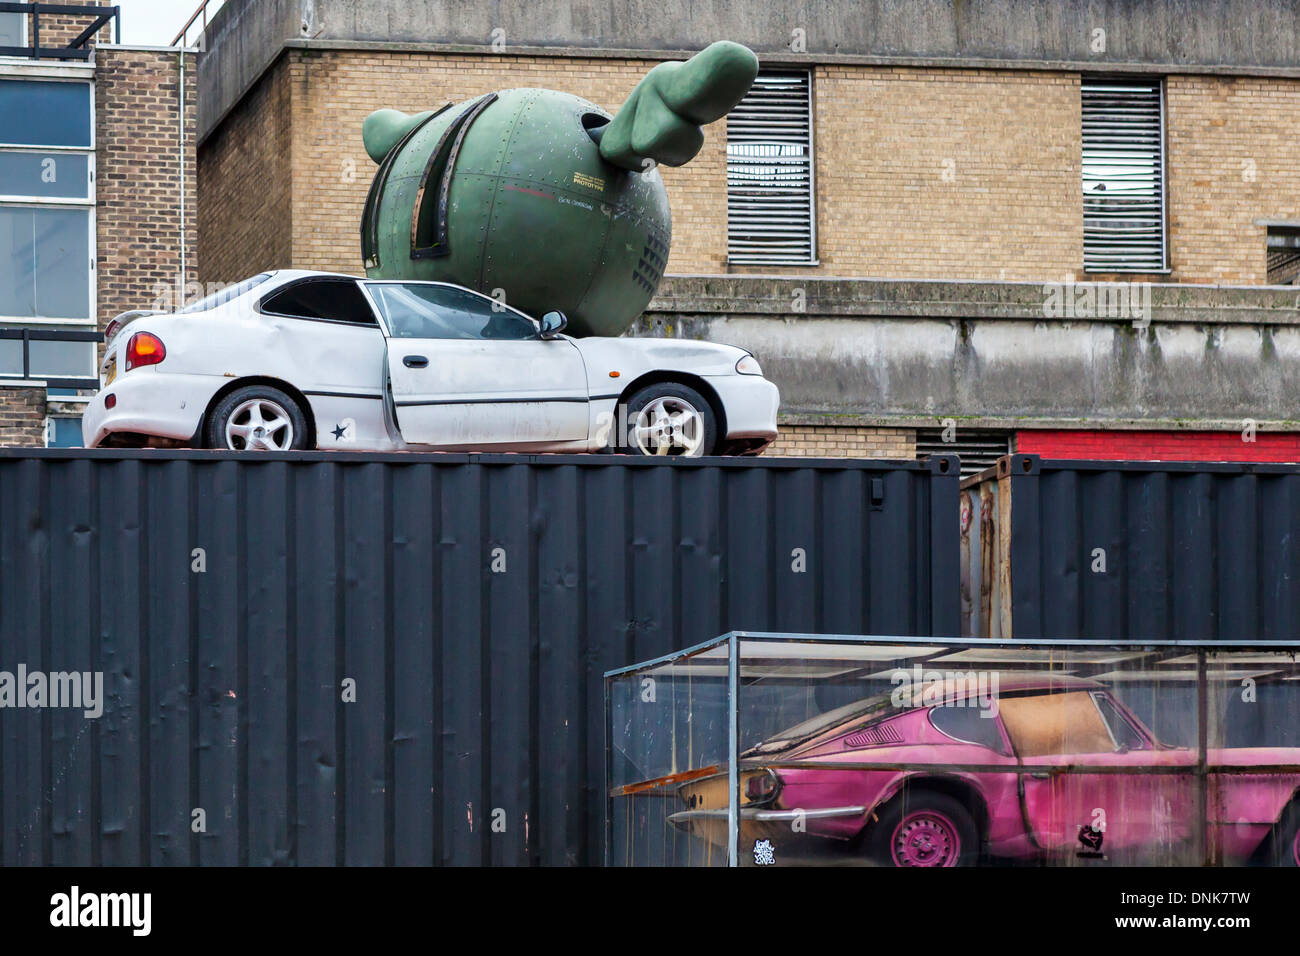 Street Installation Art Car Crushed By Green Flying Bomb And Pink Stock Photo Alamy